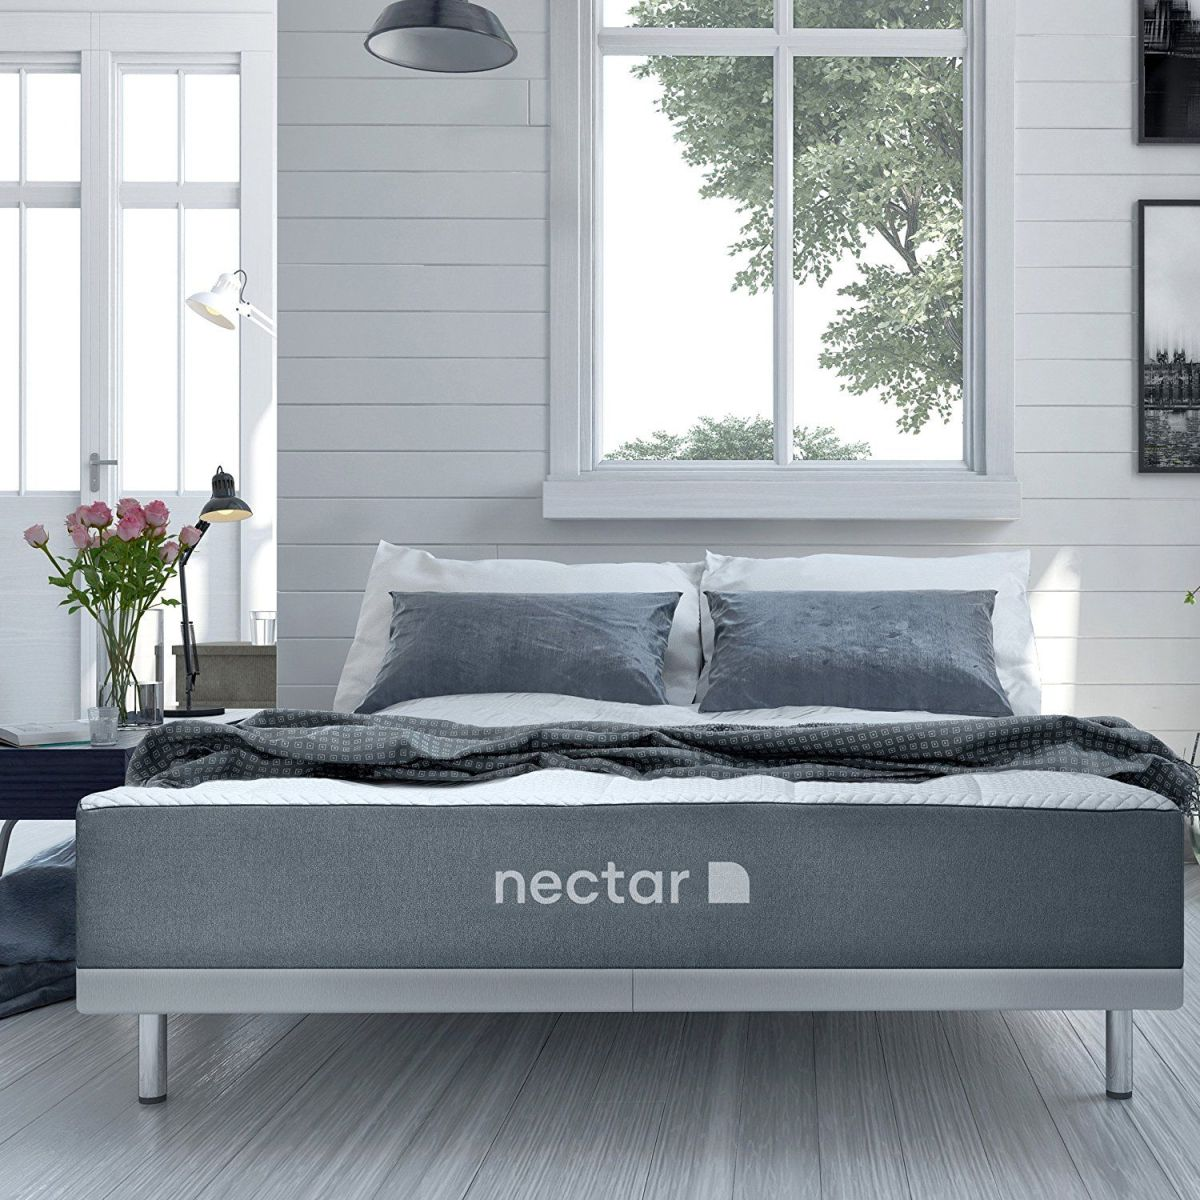 Nectar Mattress in bedroom gray